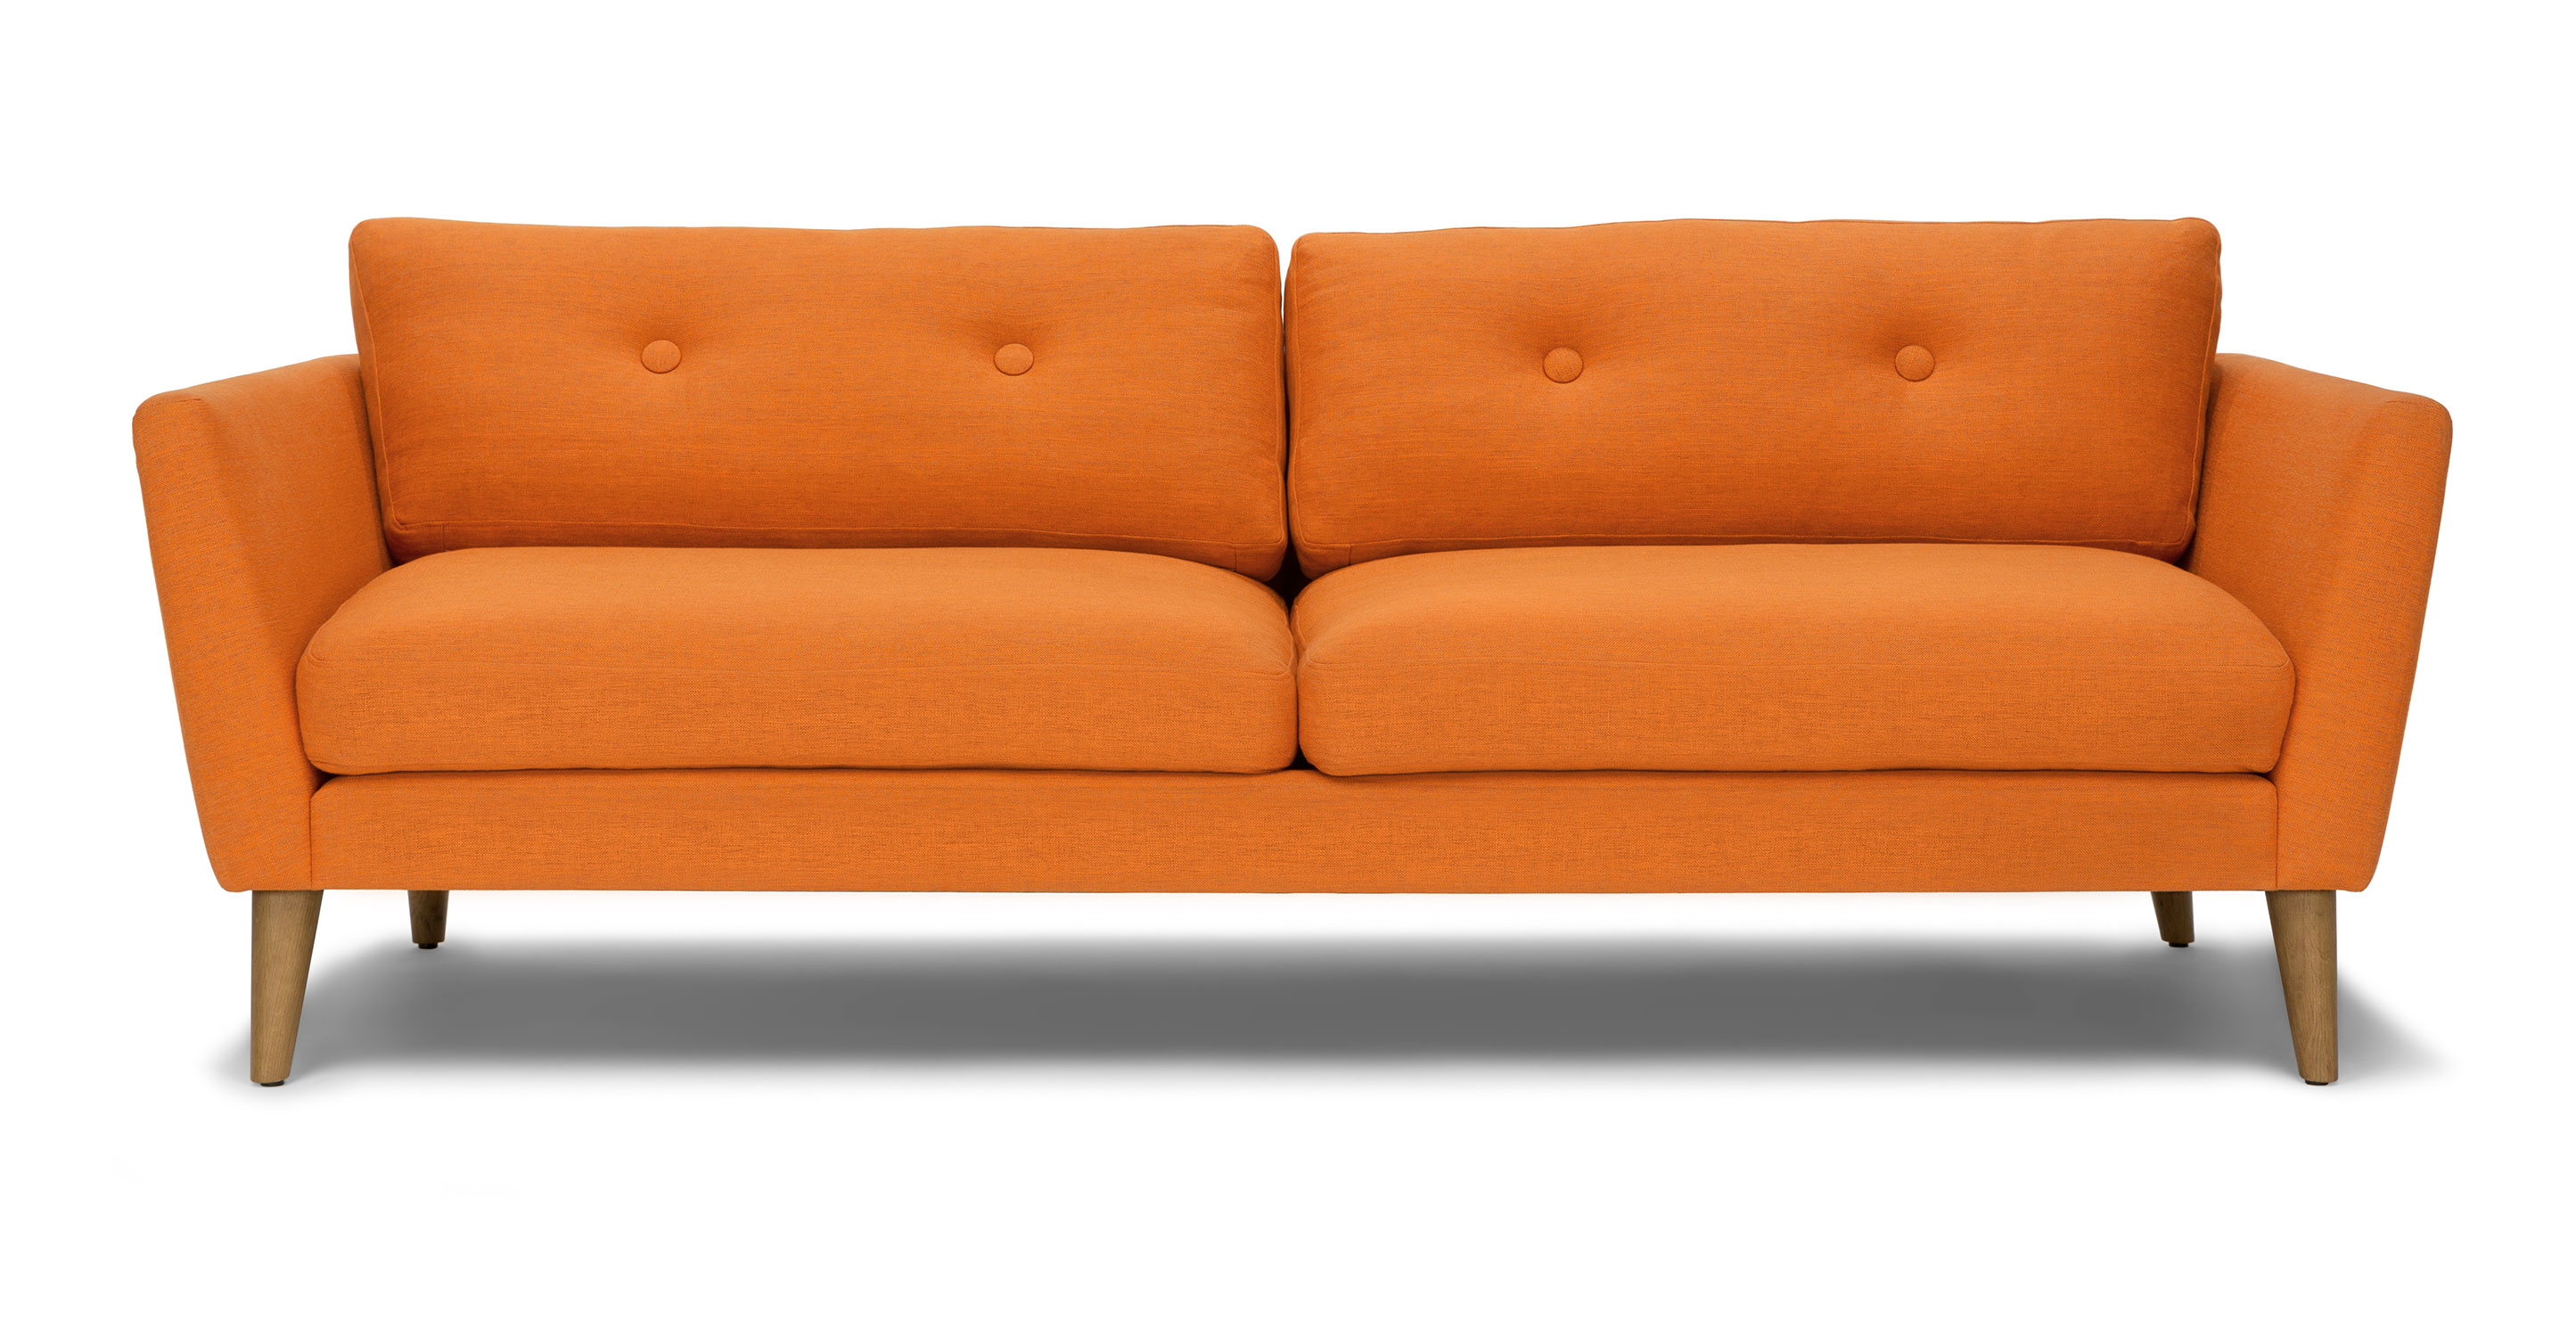 Sofa Orange Emil Papaya Orange Sofa Article